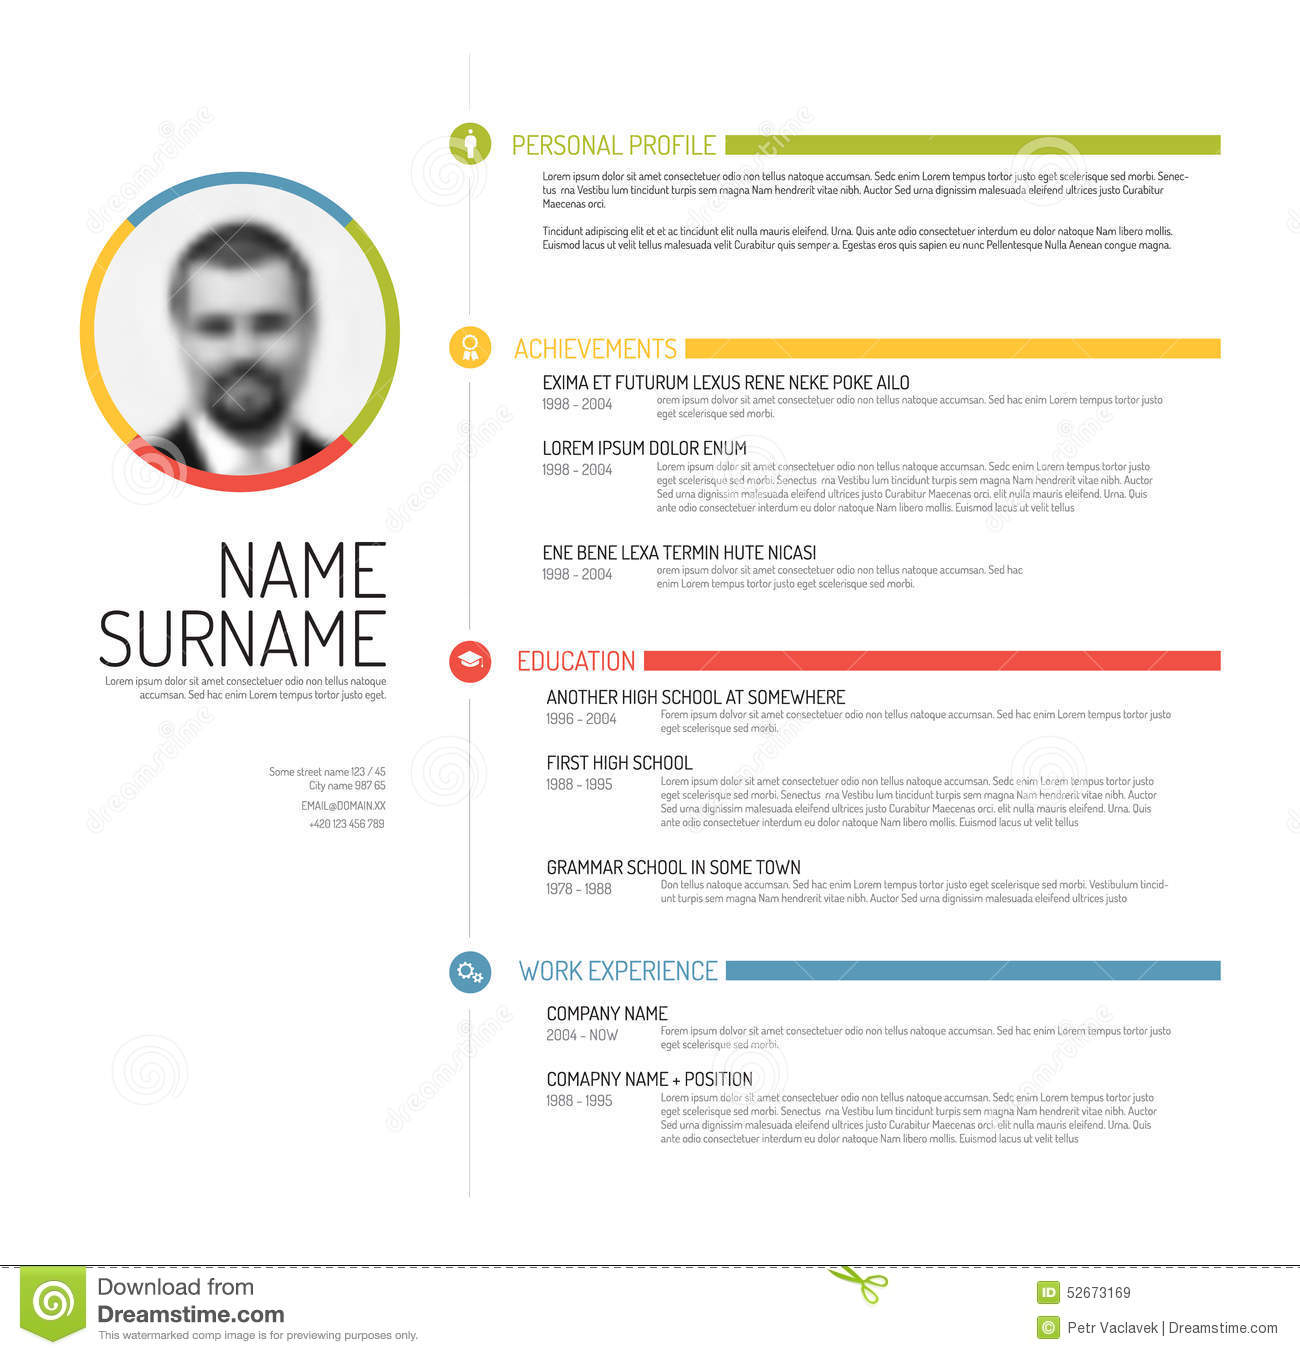 cv template pr resume builder cv template pr cv templates curriculum vitae template cv template vector mini st cv resume template mini stic